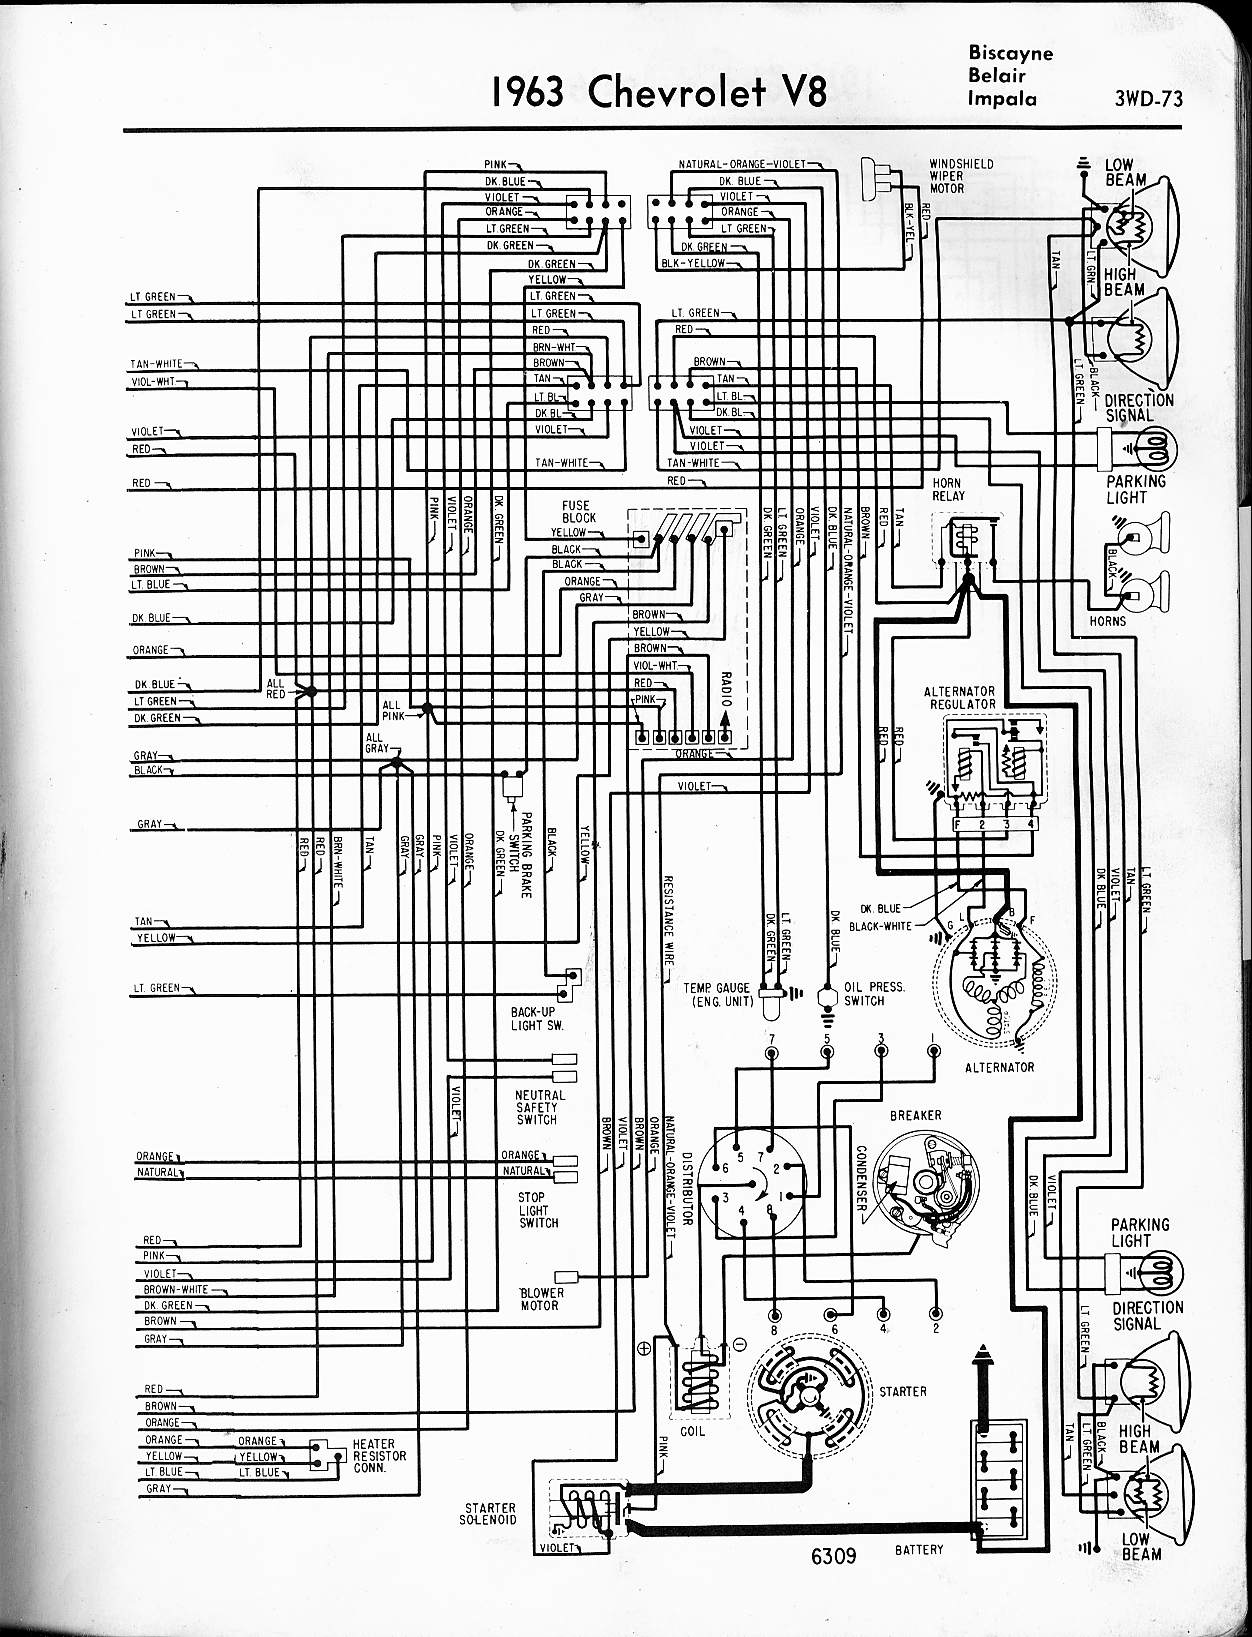 hight resolution of 57 65 chevy wiring diagrams wiring schematic 2005 impala 1963 v8 biscayne belair impala